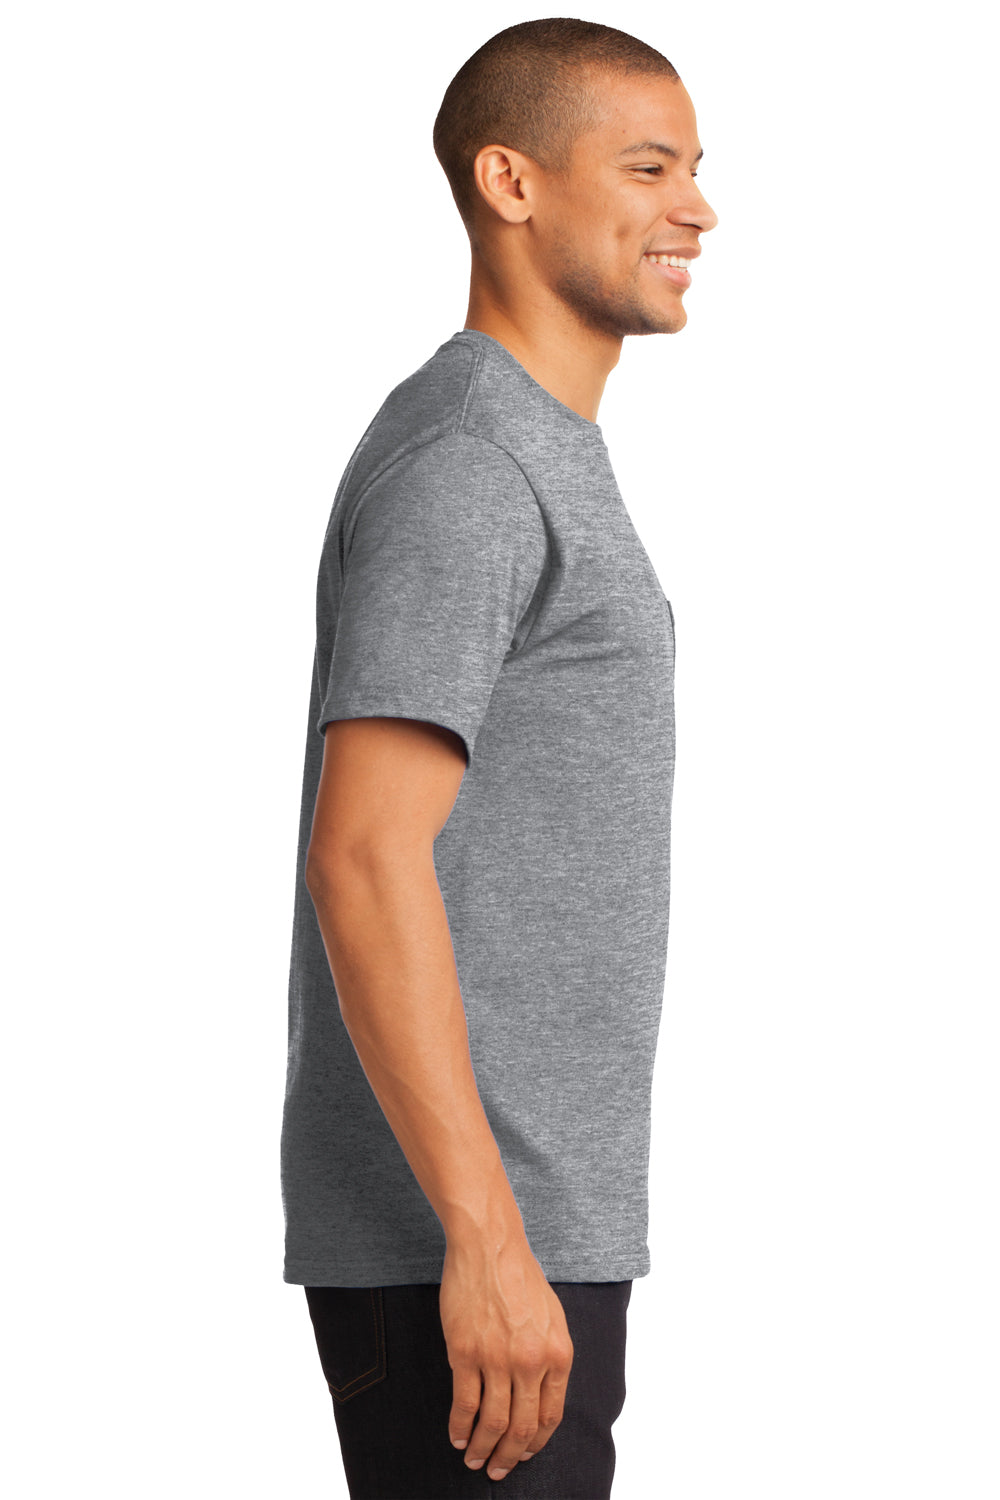 Port & Company PC61P Mens Essential Short Sleeve Crewneck T-Shirt w/ Pocket Heather Grey Side